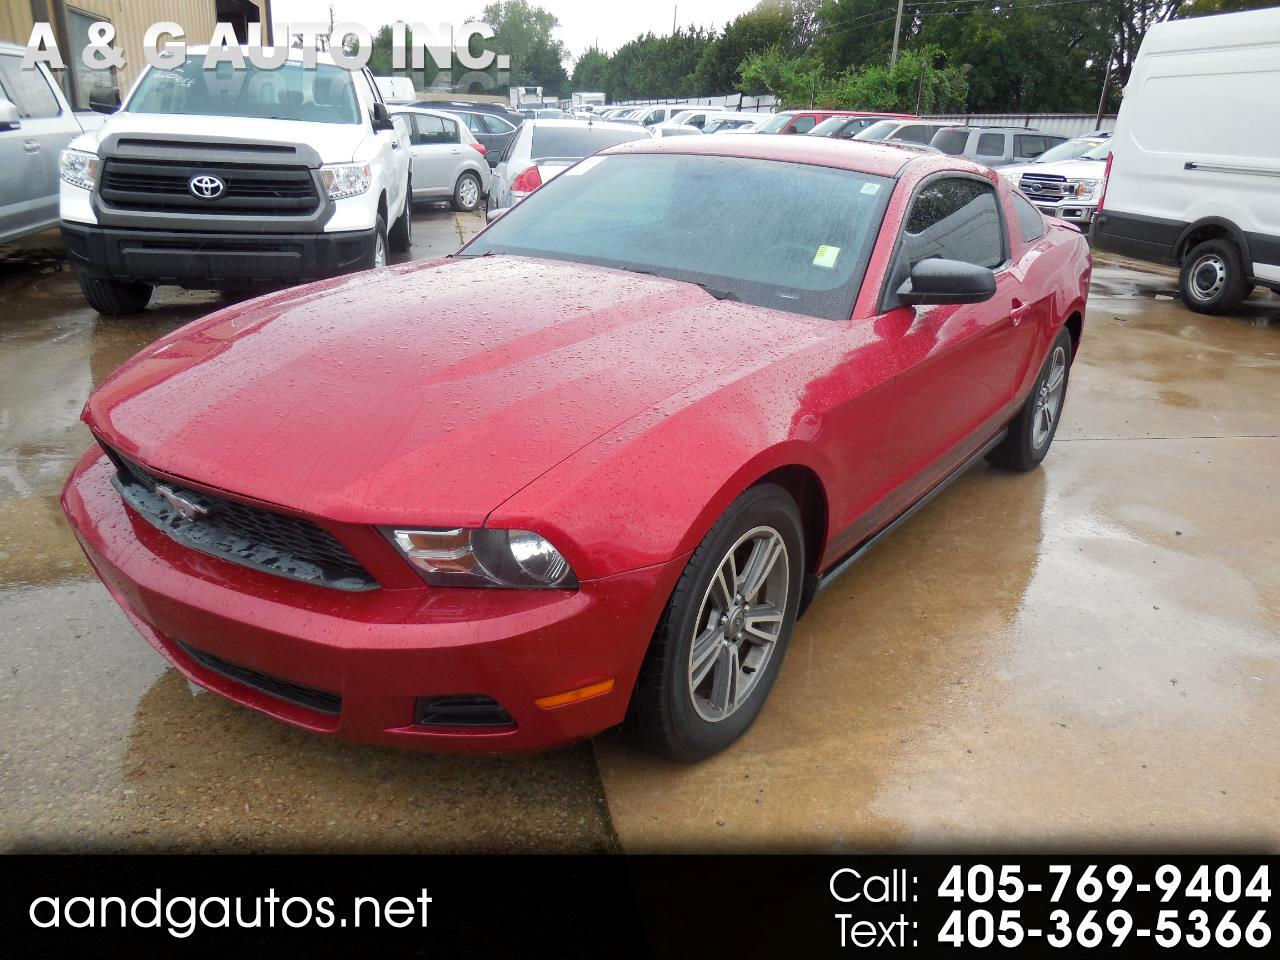 Ford Mustang V6 Coupe 2012